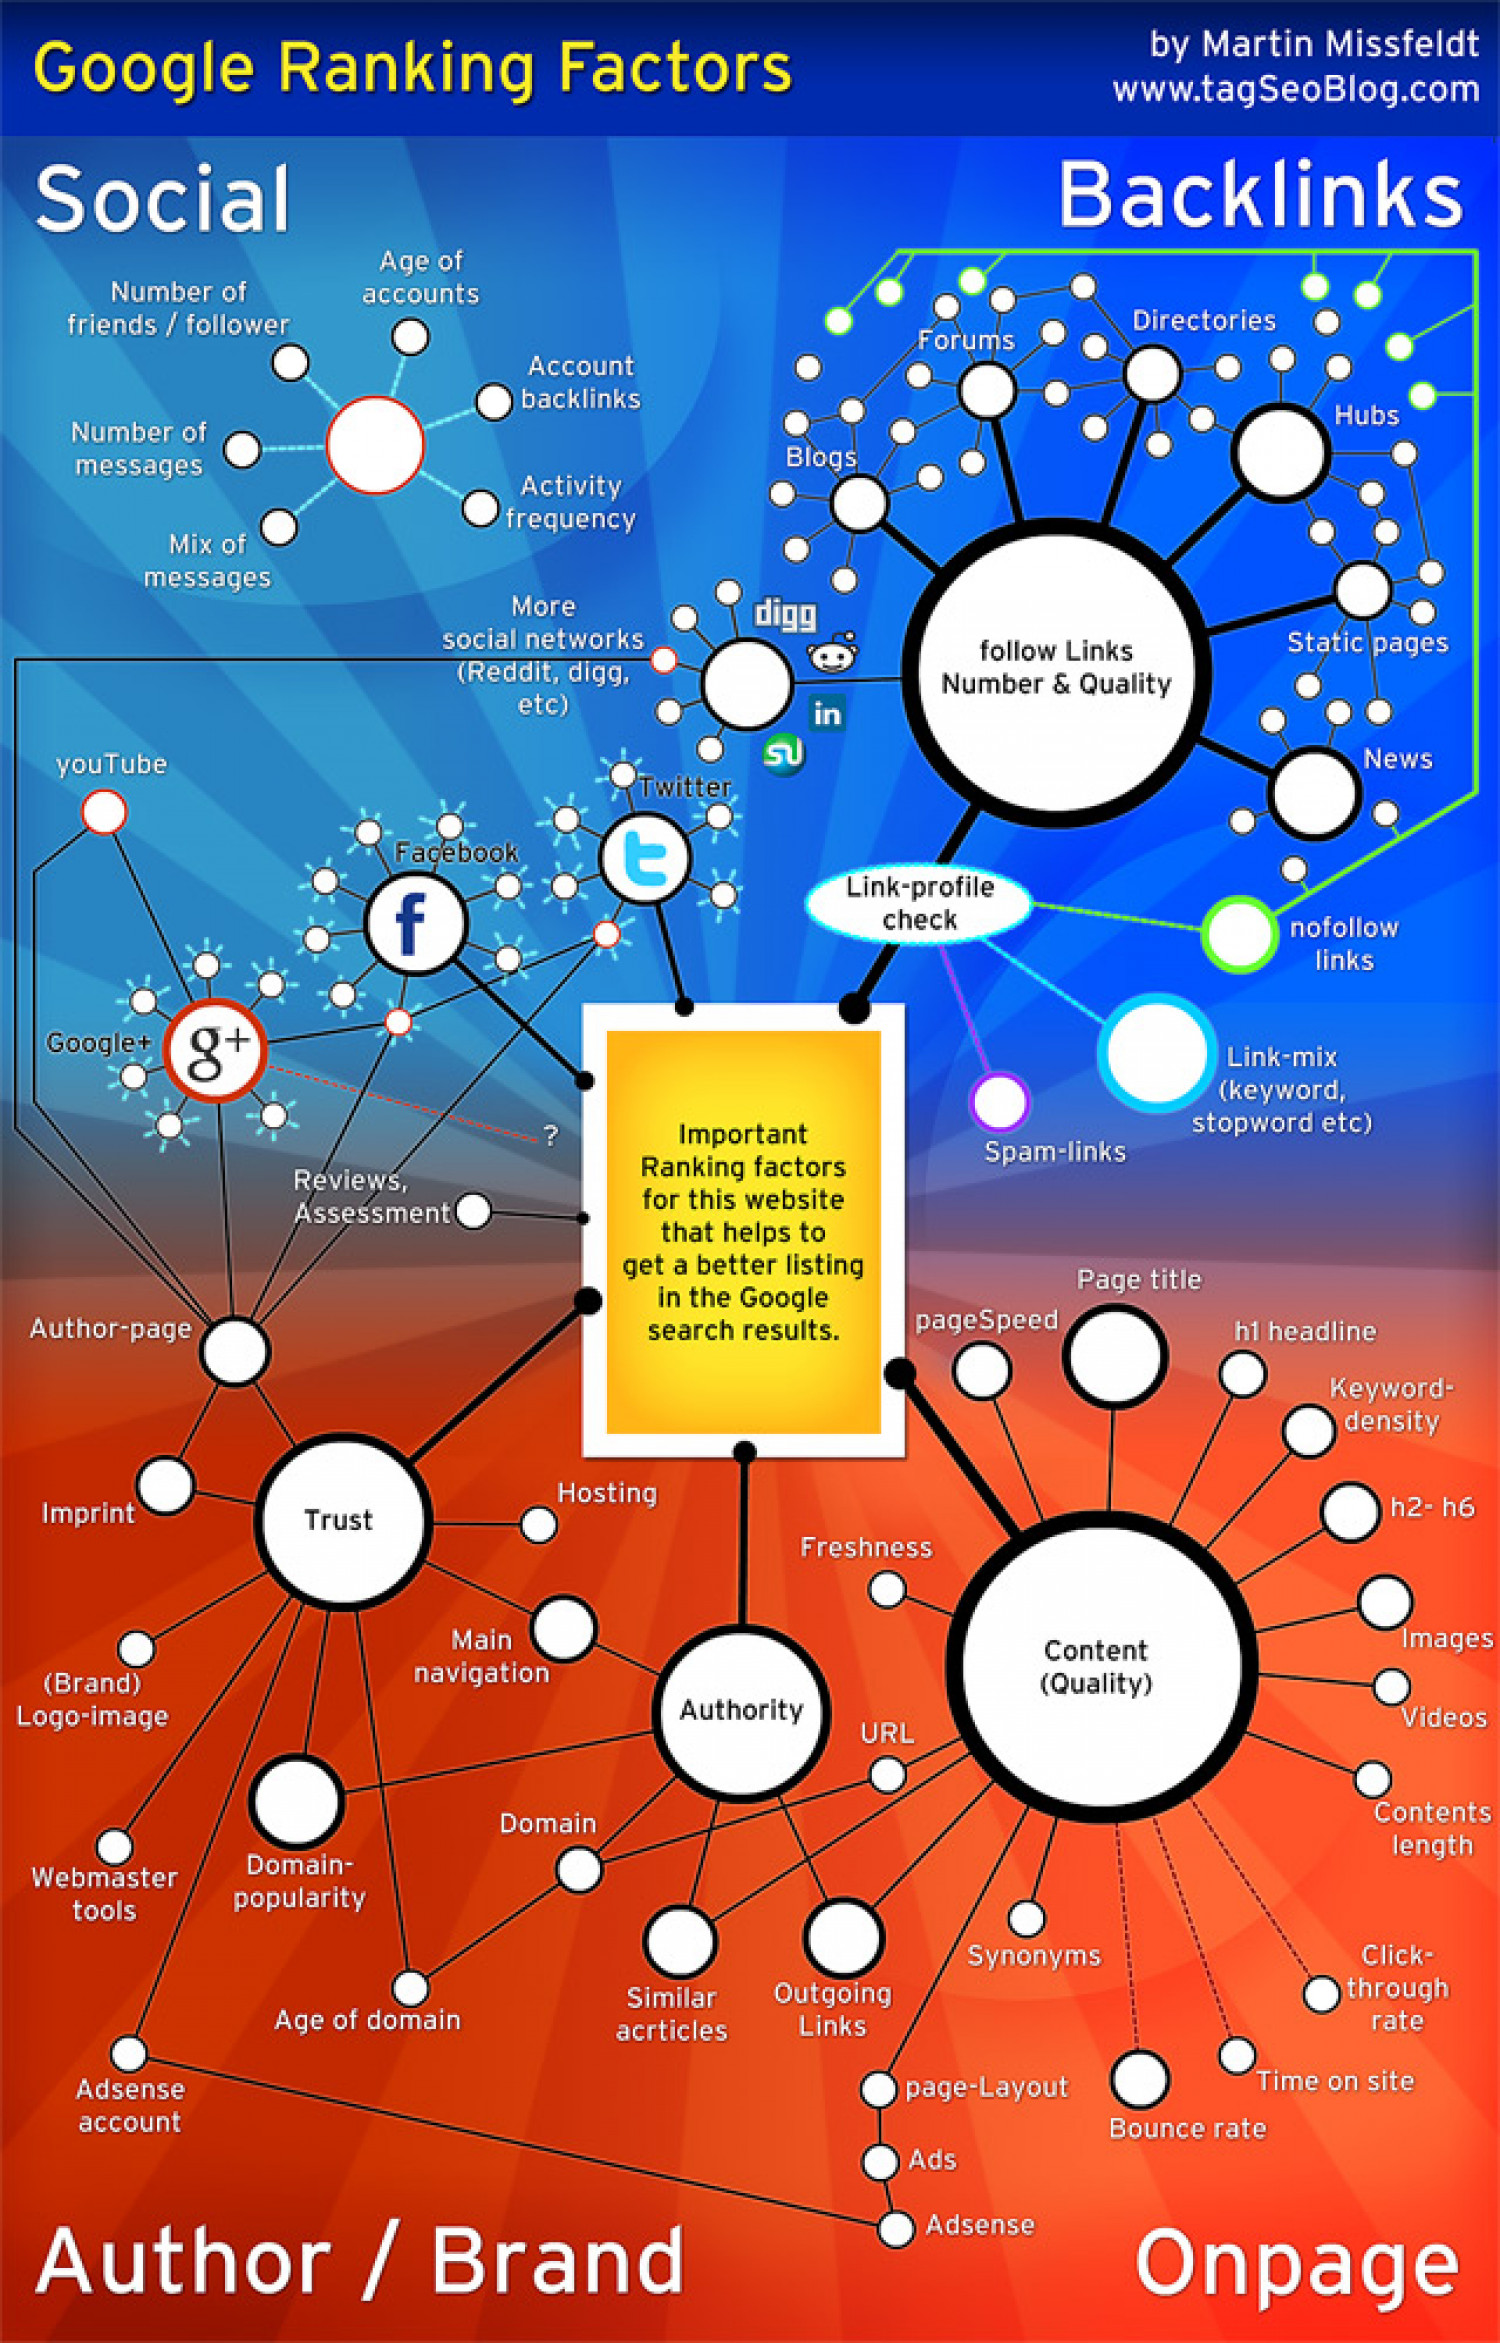 Google Search Ranking Factors 2012 Infographic